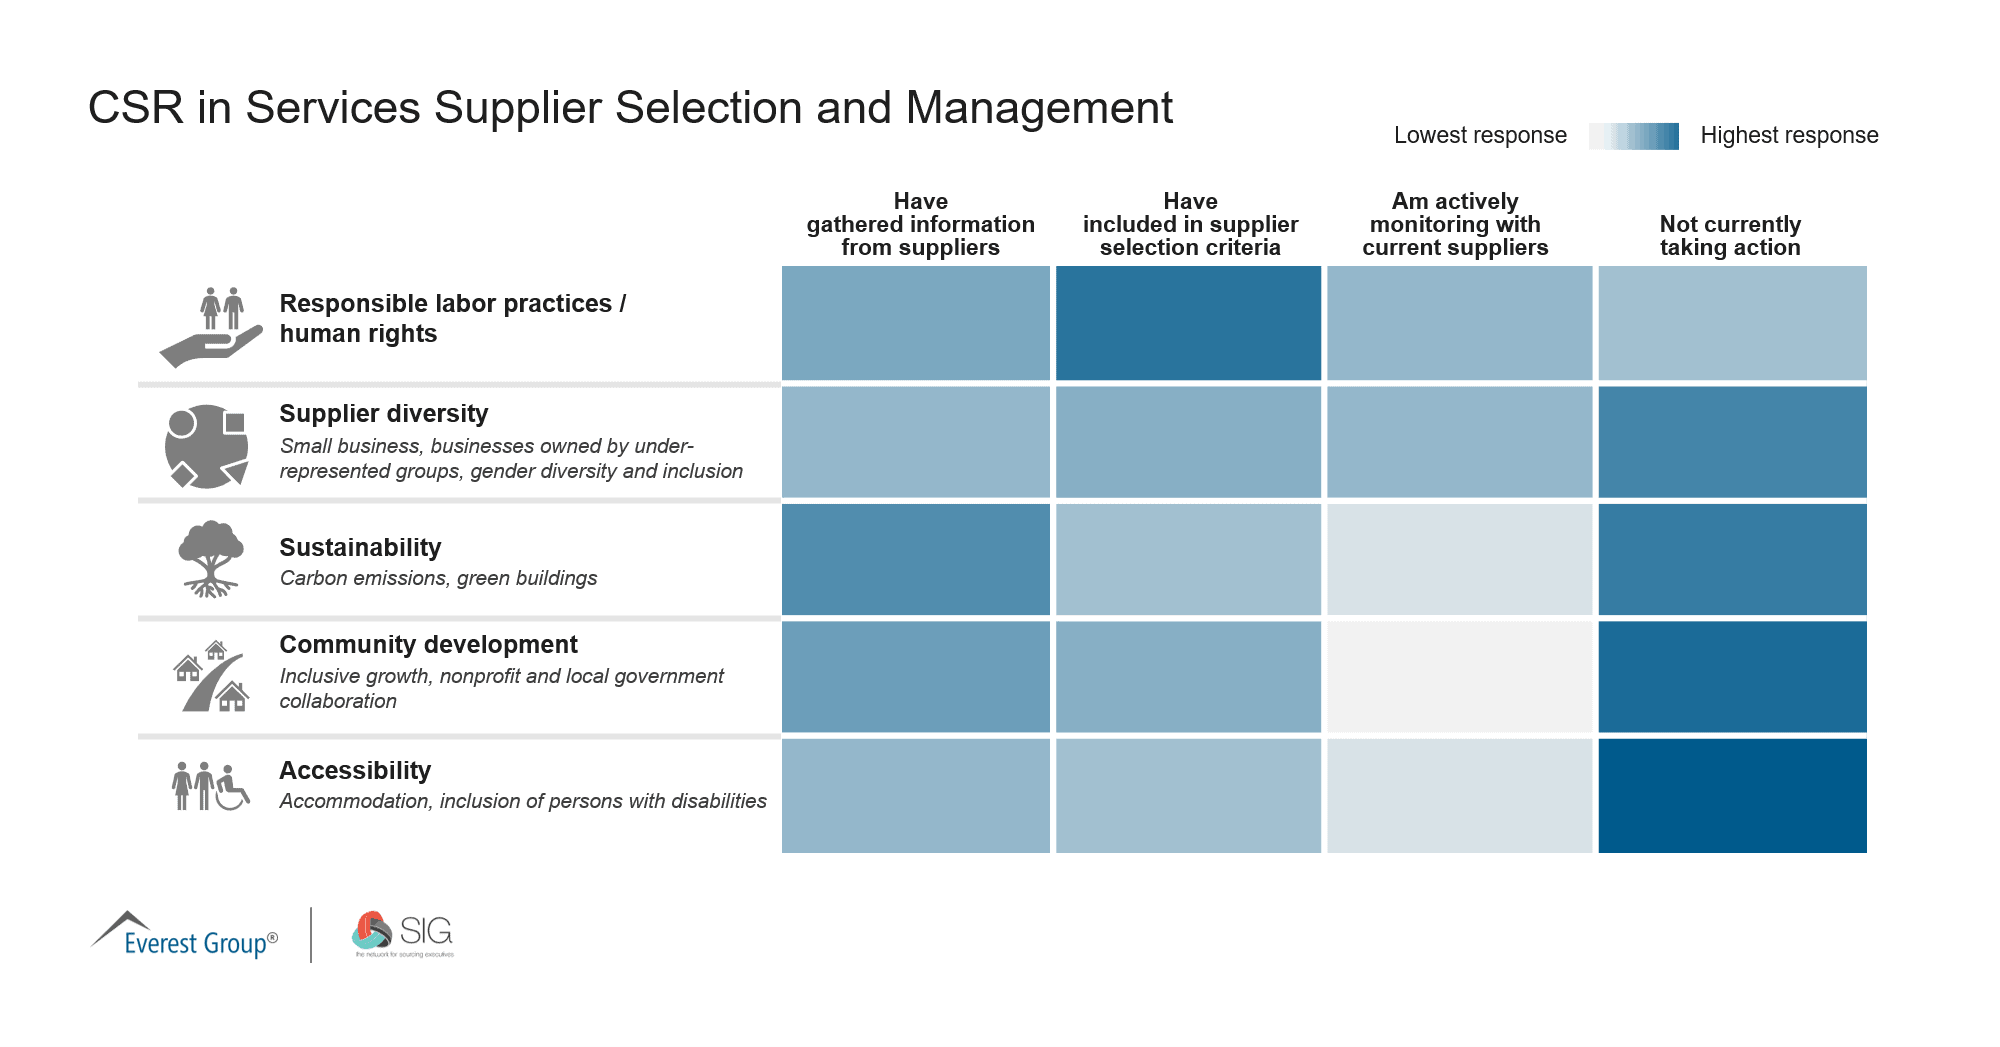 Q1 CSR in Services Supplier Selection and Management